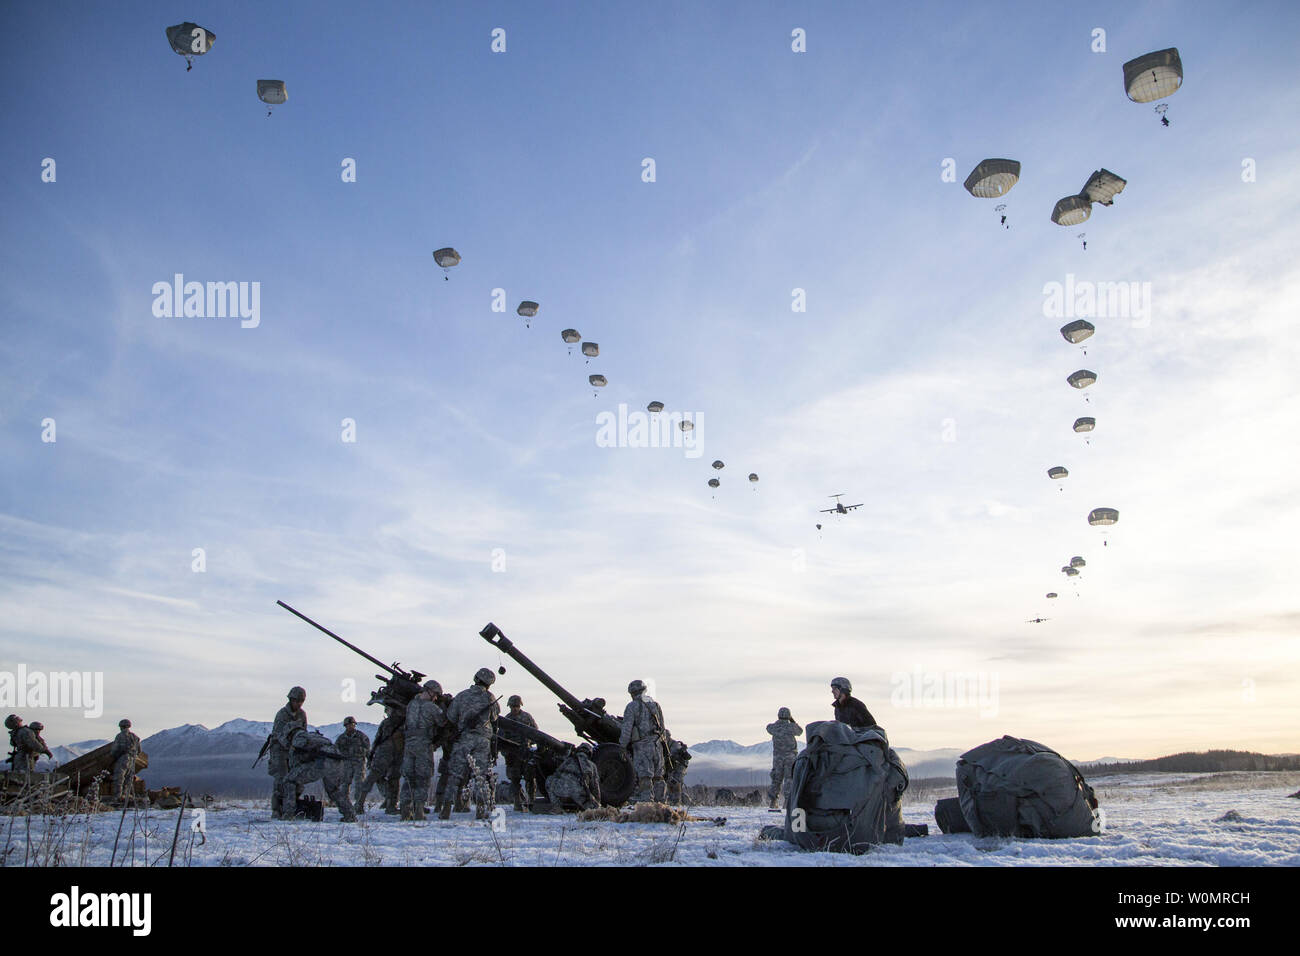 Paratroopers assigned to A Battery, 2nd Battalion, 377th Parachute Field Artillery Regiment, 4th Infantry Brigade Combat Team (Airborne), 25th Infantry Division, U.S. Army Alaska, descend over Malemute drop zone while conducting airborne and live fire training at Joint Base Elmendorf-Richardson, Alaska, November 22, 2016. Photo by Alejandro Pena/U.S. Air Force/UPI Stock Photo